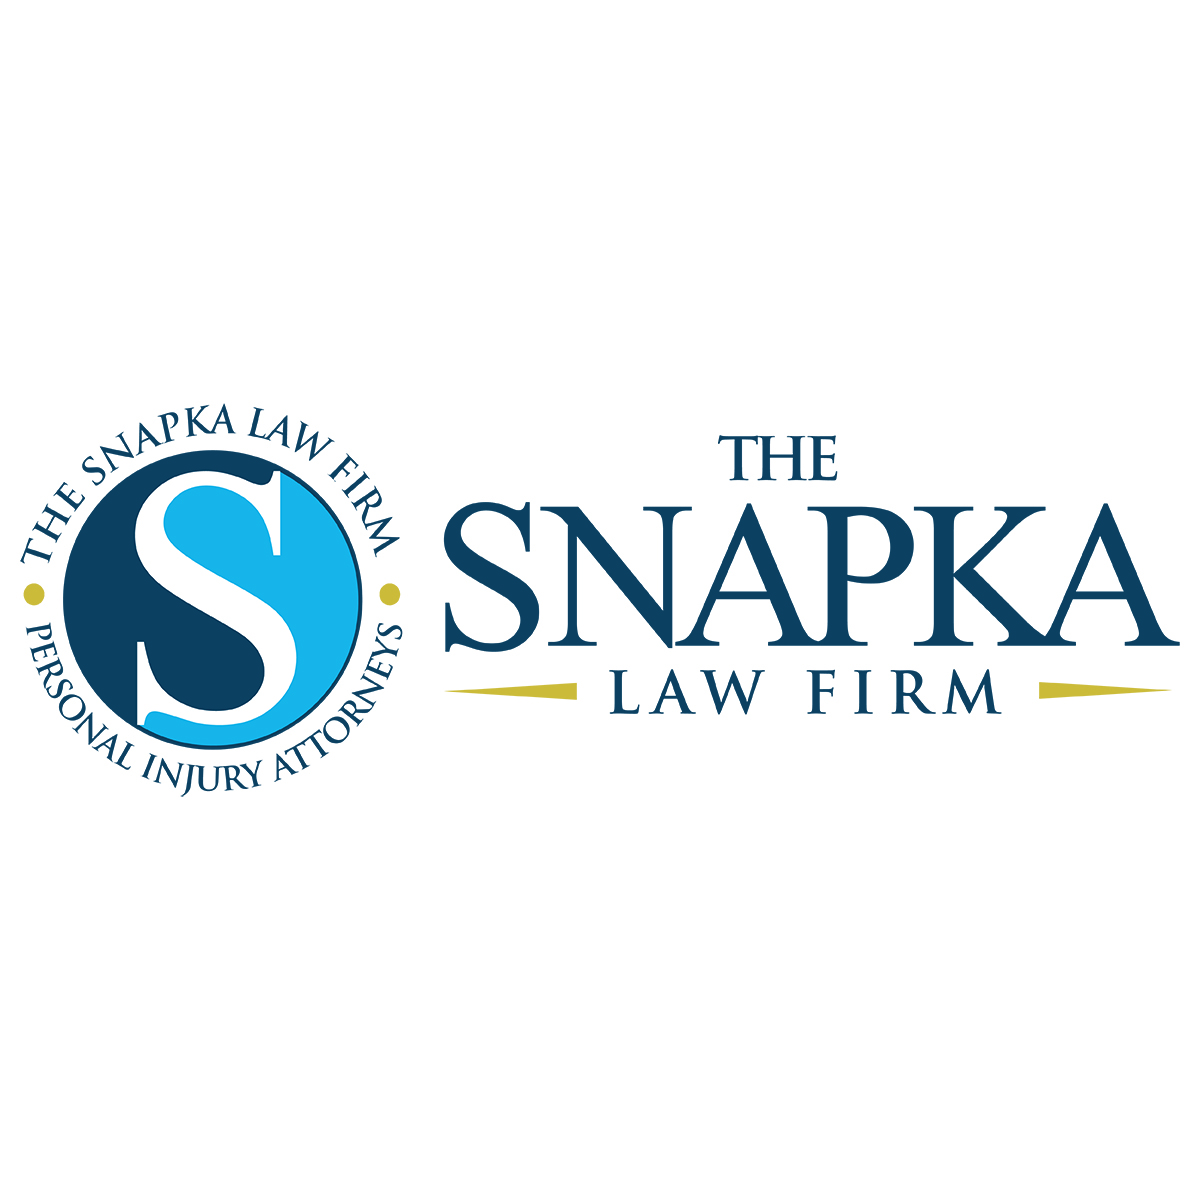 Snapka Law Firm Named One Of The Best Medical Malpractice Attorneys In Texas By Attorney At Law Magazine